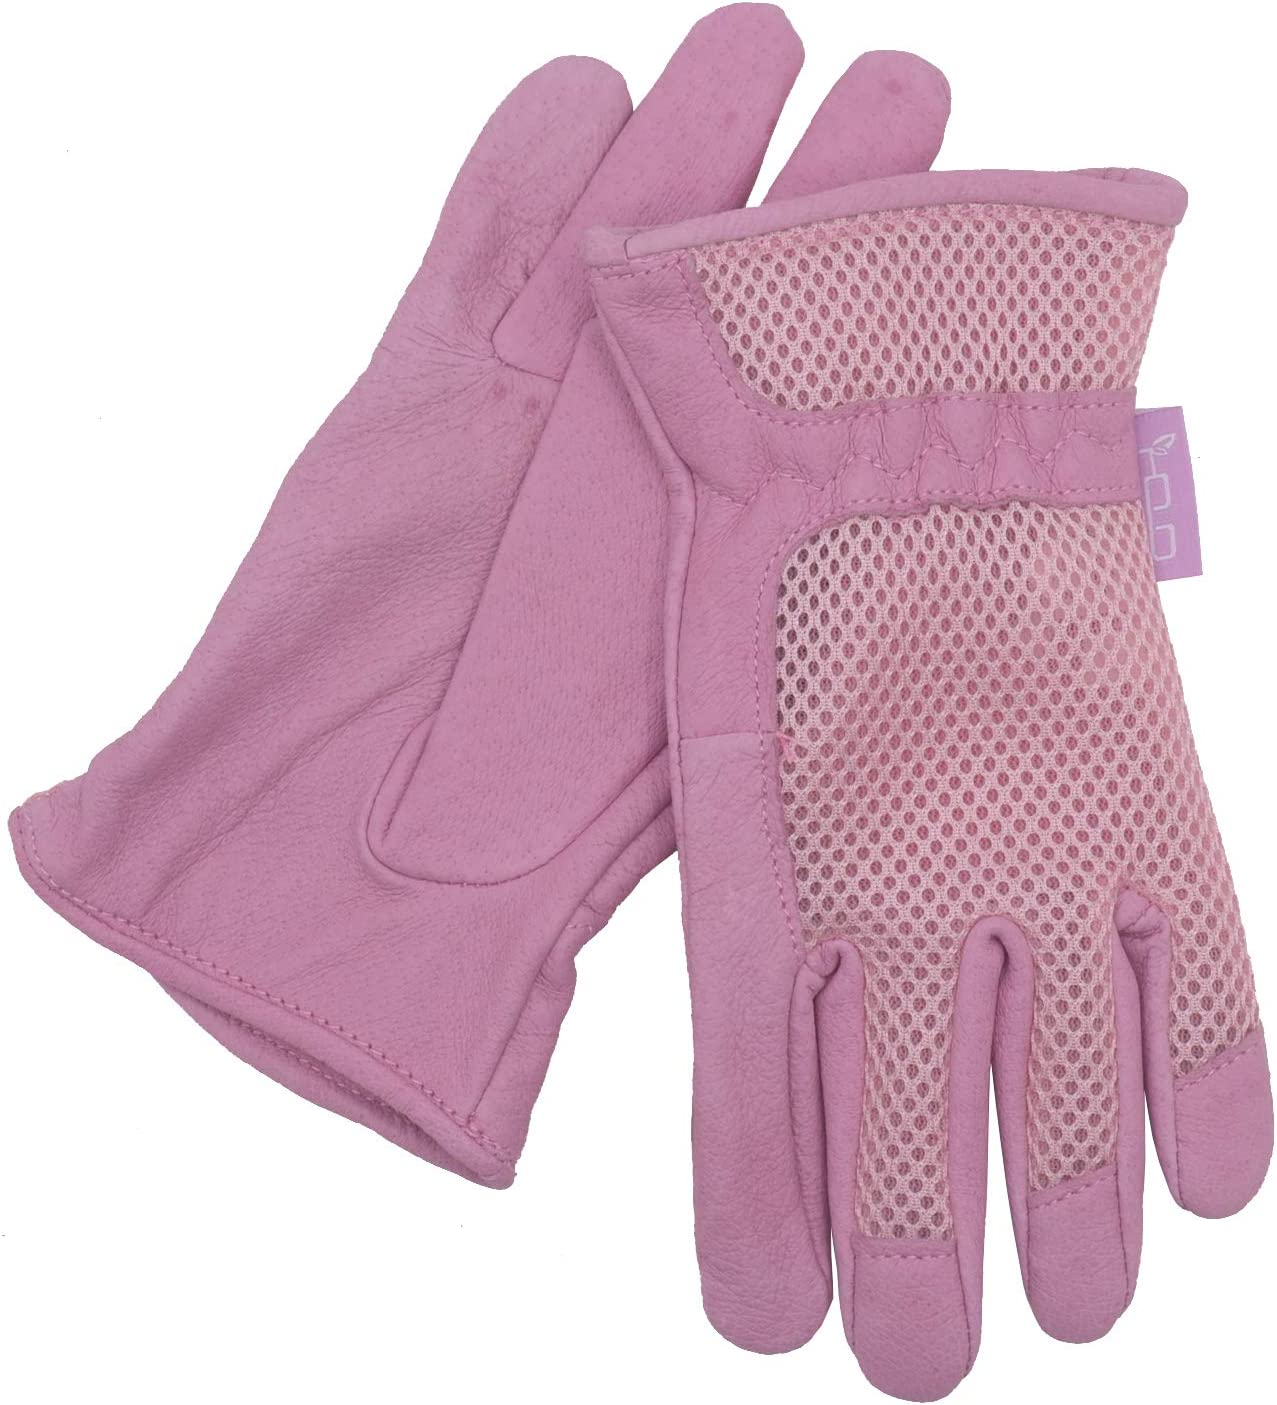 Large, Pink HANDLANDY Womens Garden Gloves Scratch Resistance Leather Gardening Gloves for Ladise,Yard Gloves 3D Mesh Comfort Fit Improves Dexterity and Breathability